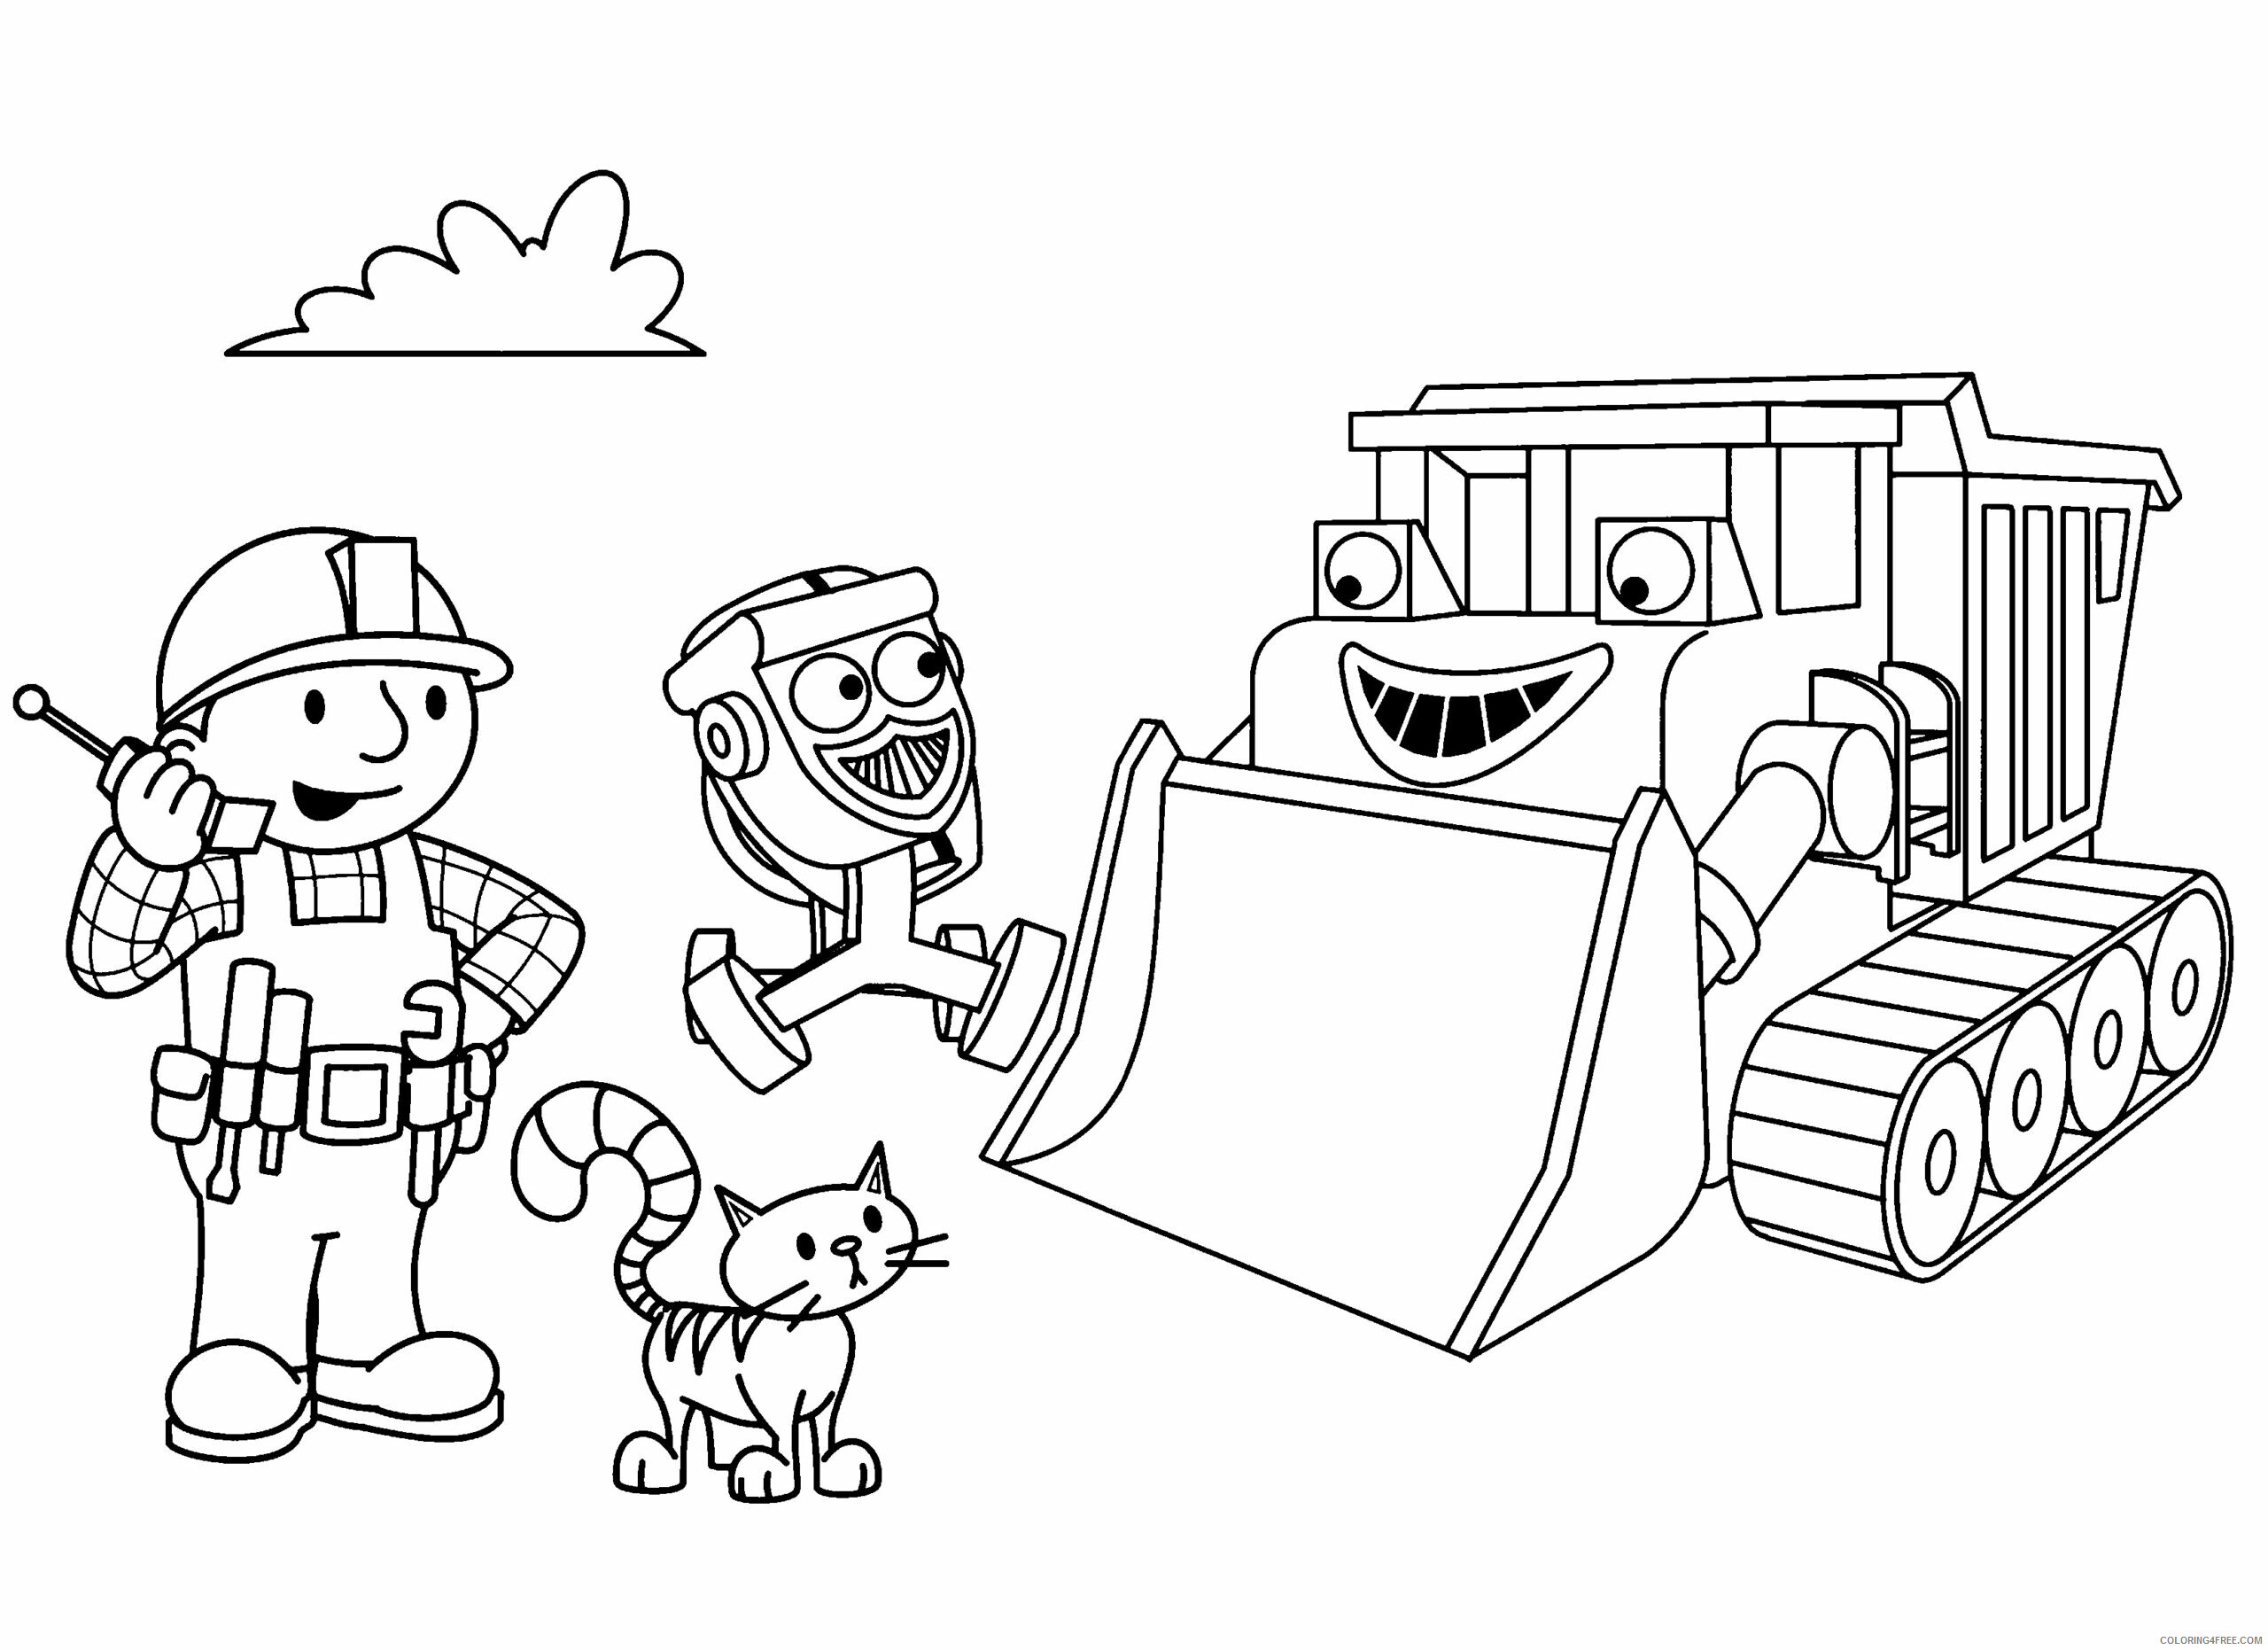 Bob the Builder Coloring Pages TV Film bob the builder 75 Printable 2020 01096 Coloring4free